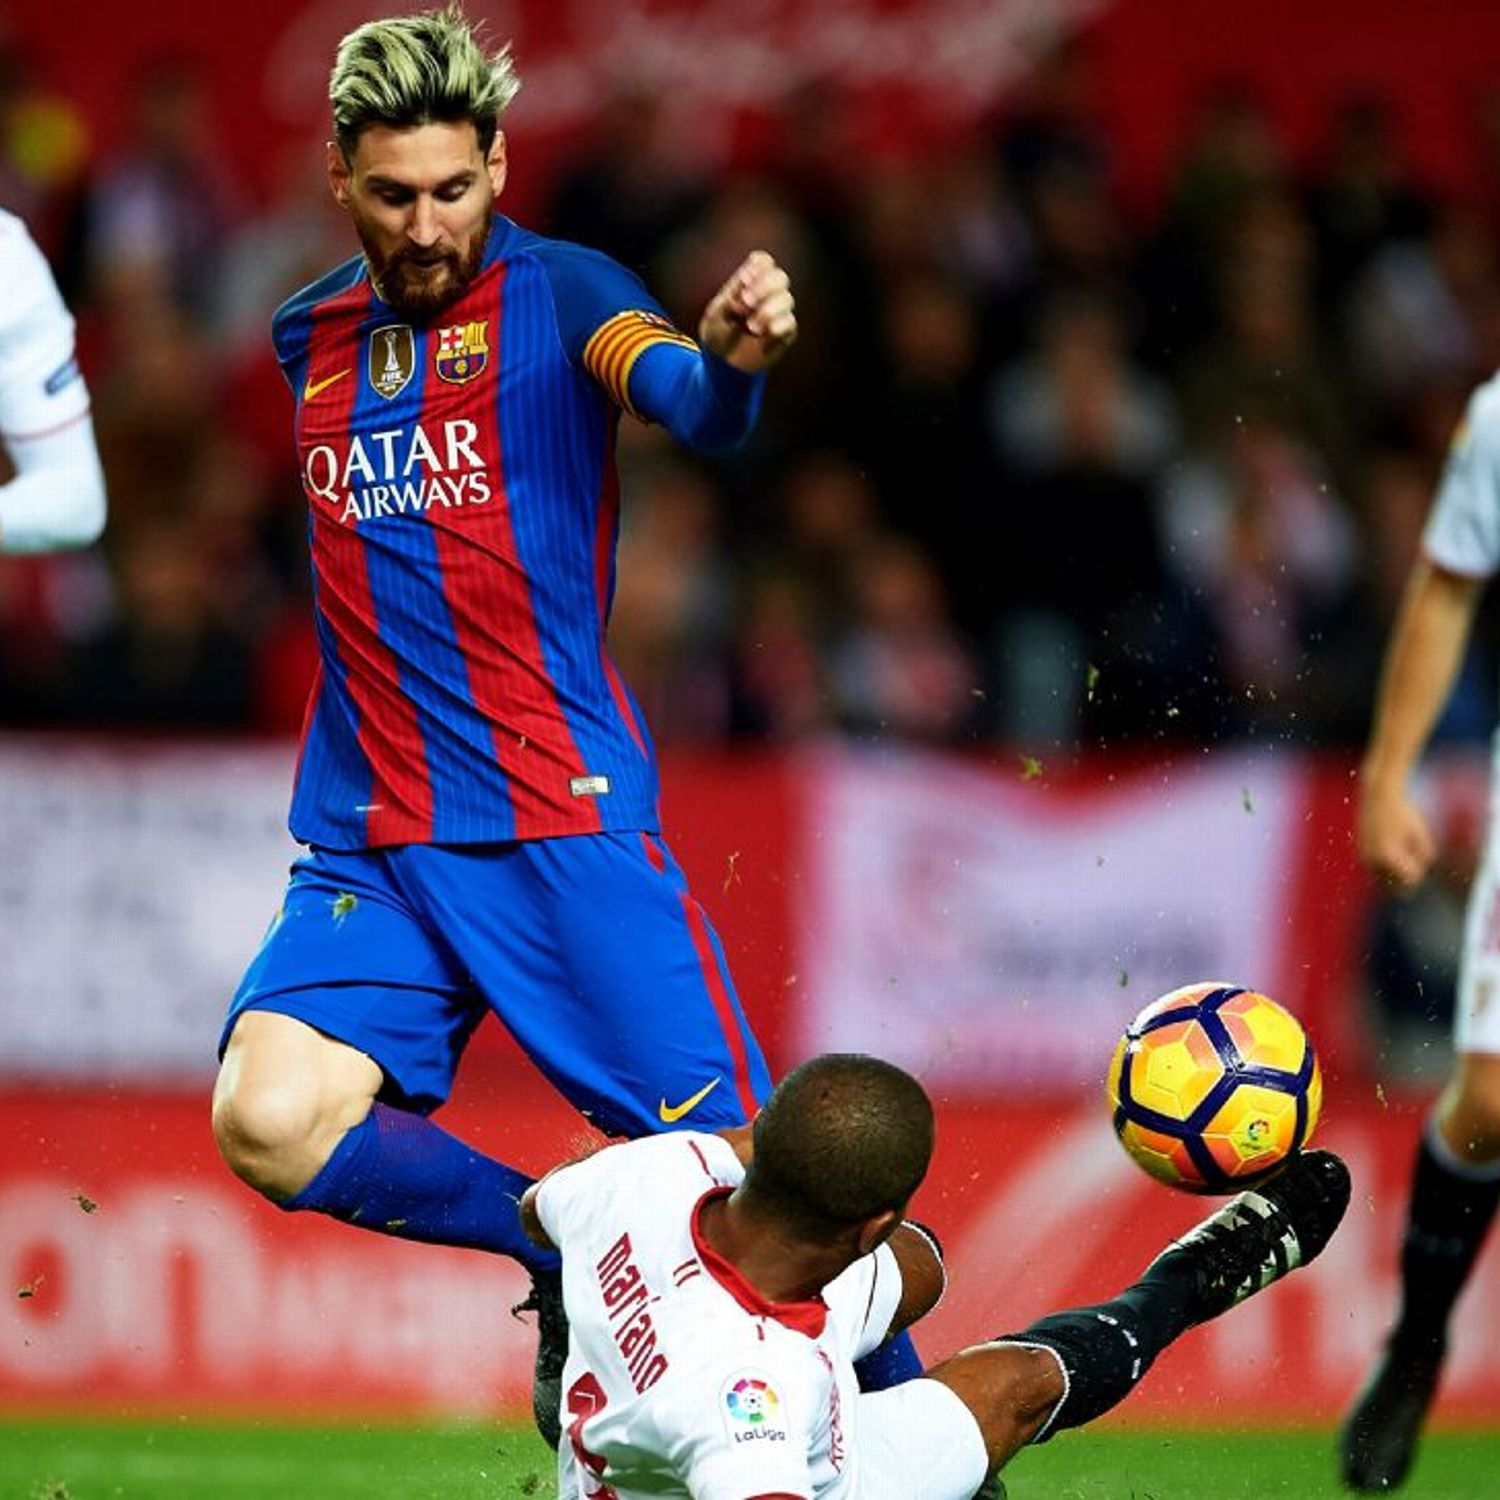 caad53e9a Barcelona to appeal Lionel Messi yellow card in defeat of Sevilla ...